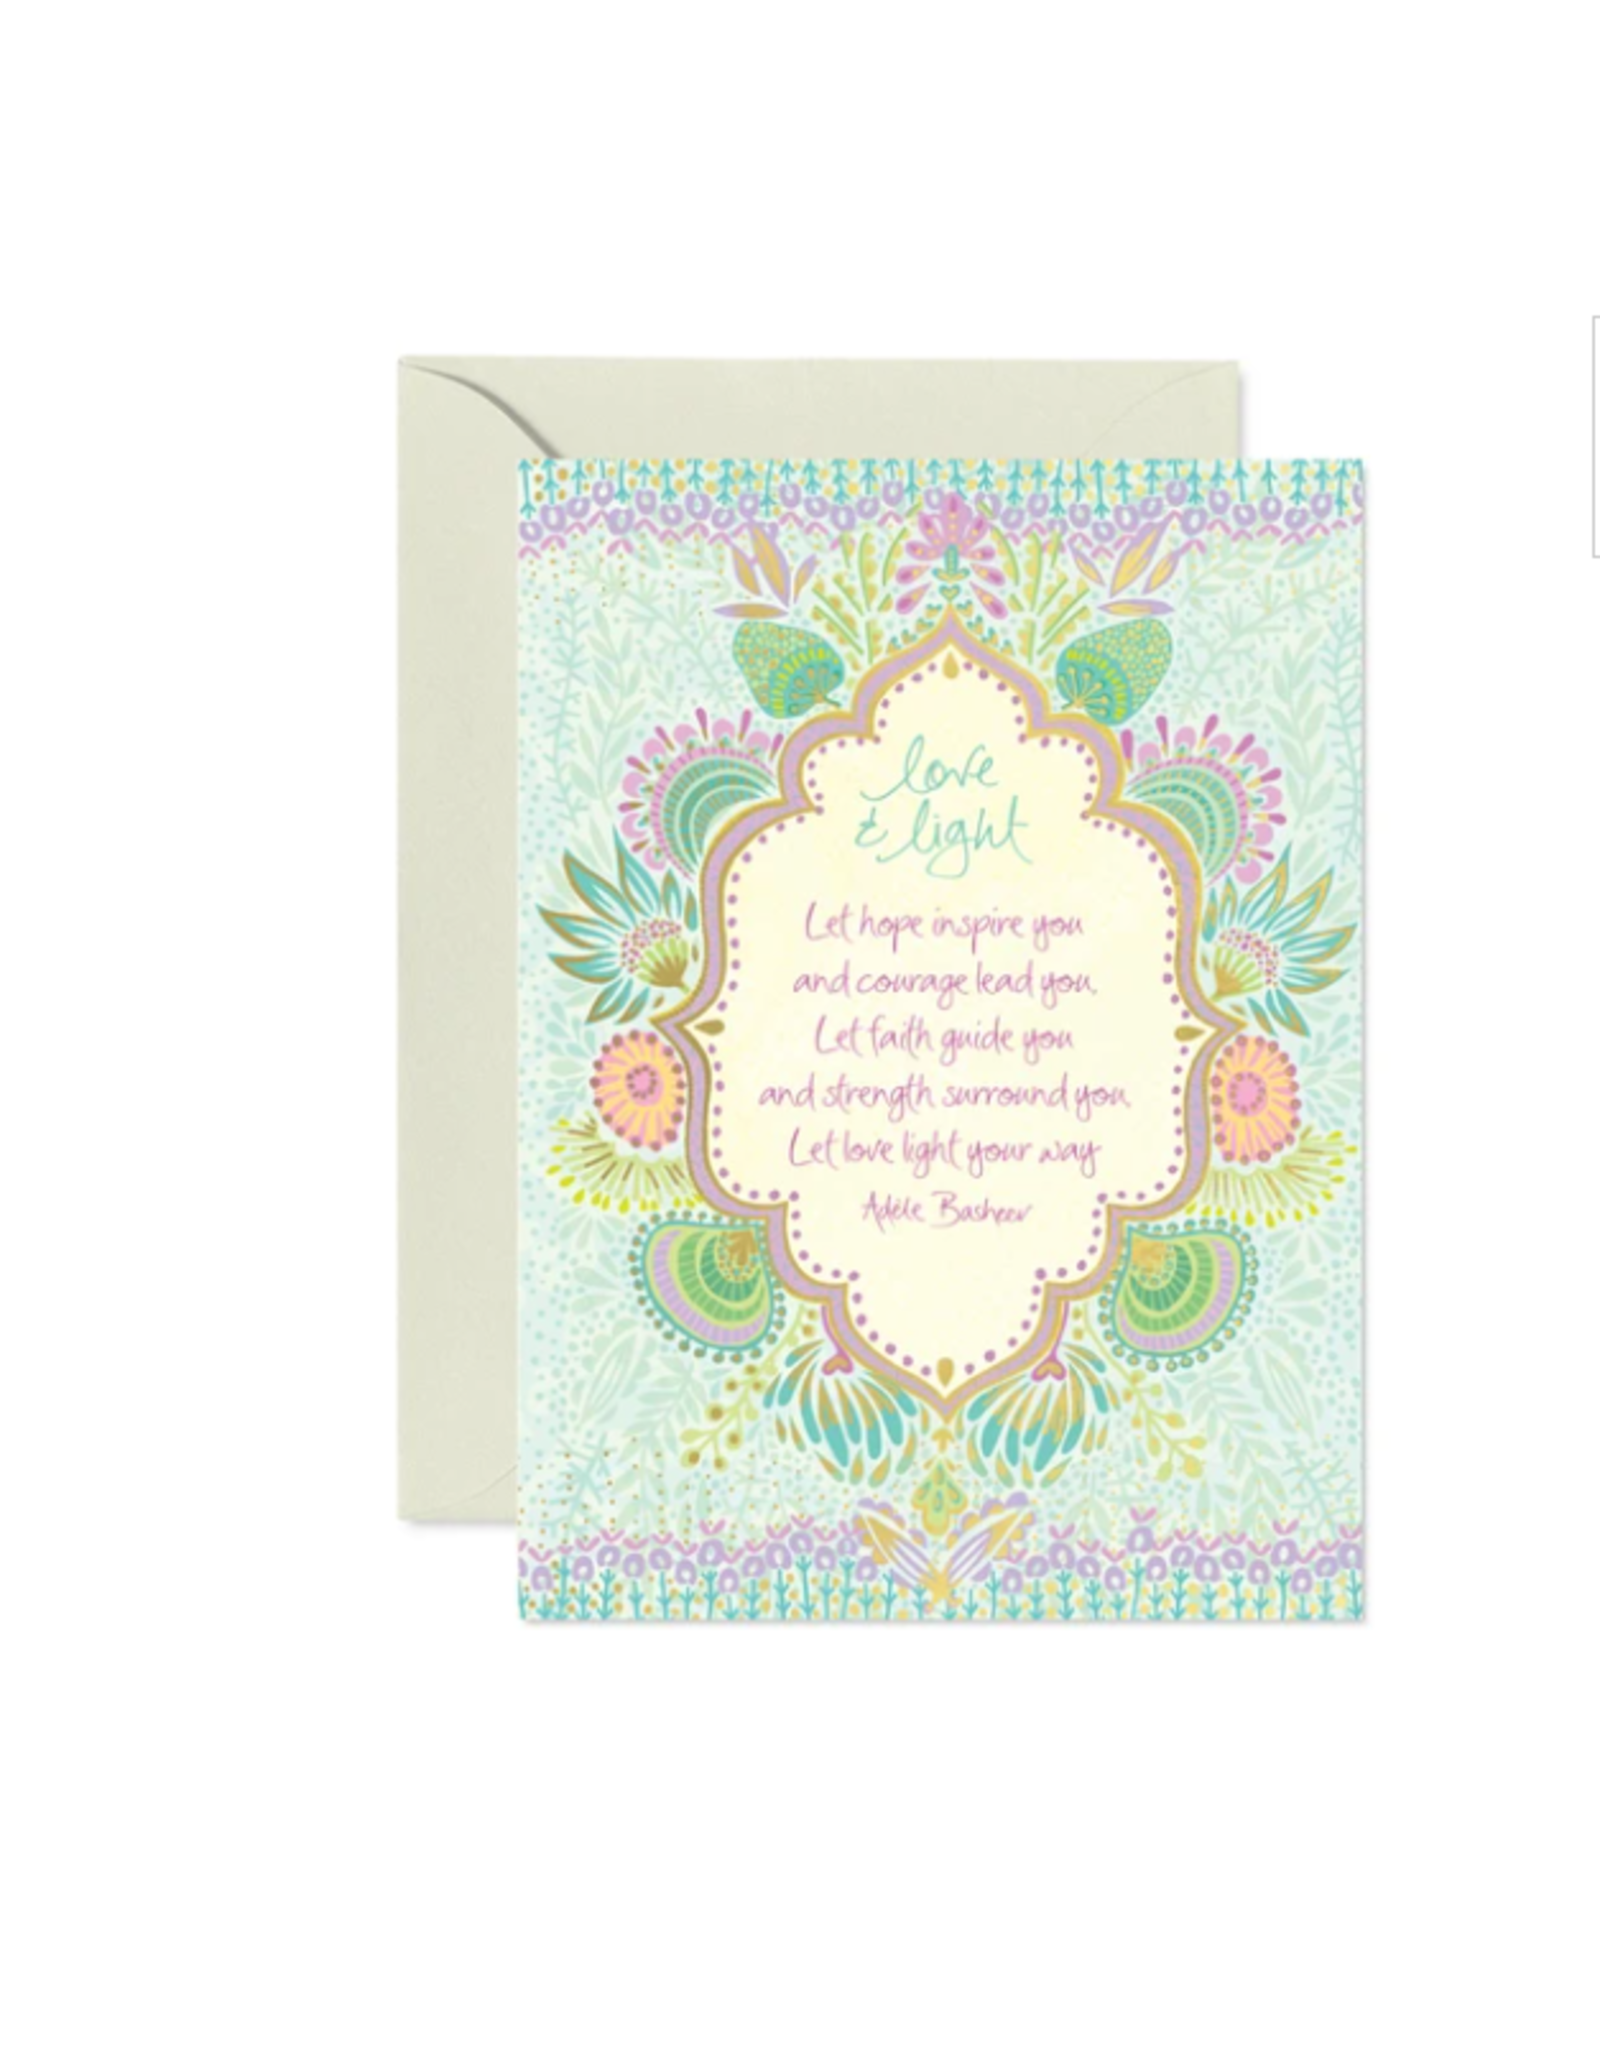 Intrinsic Love and Light Greeting Card